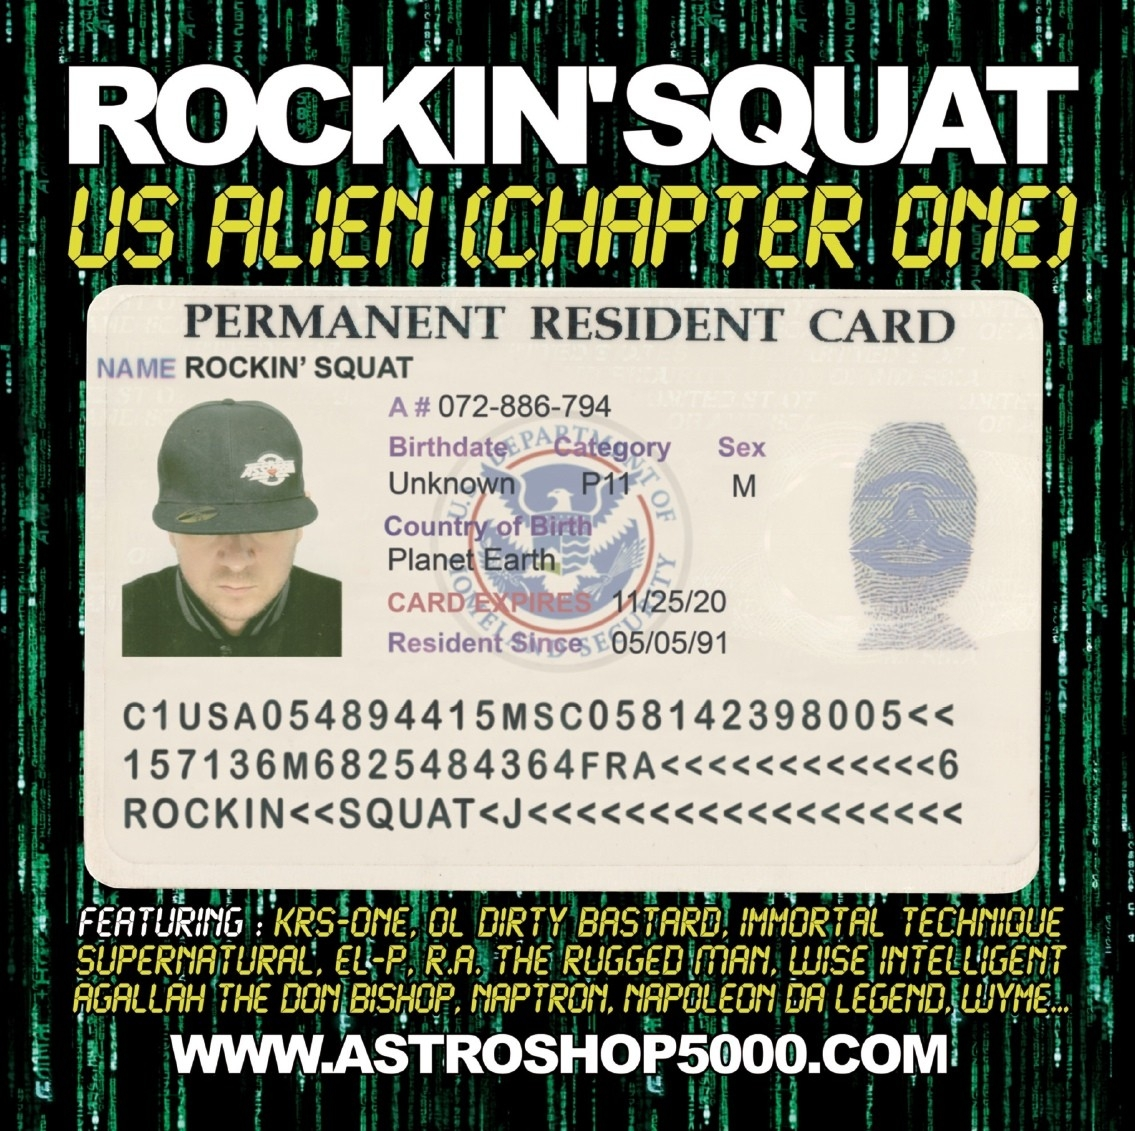 Album vinyl rocking squat - us alien - chapter one